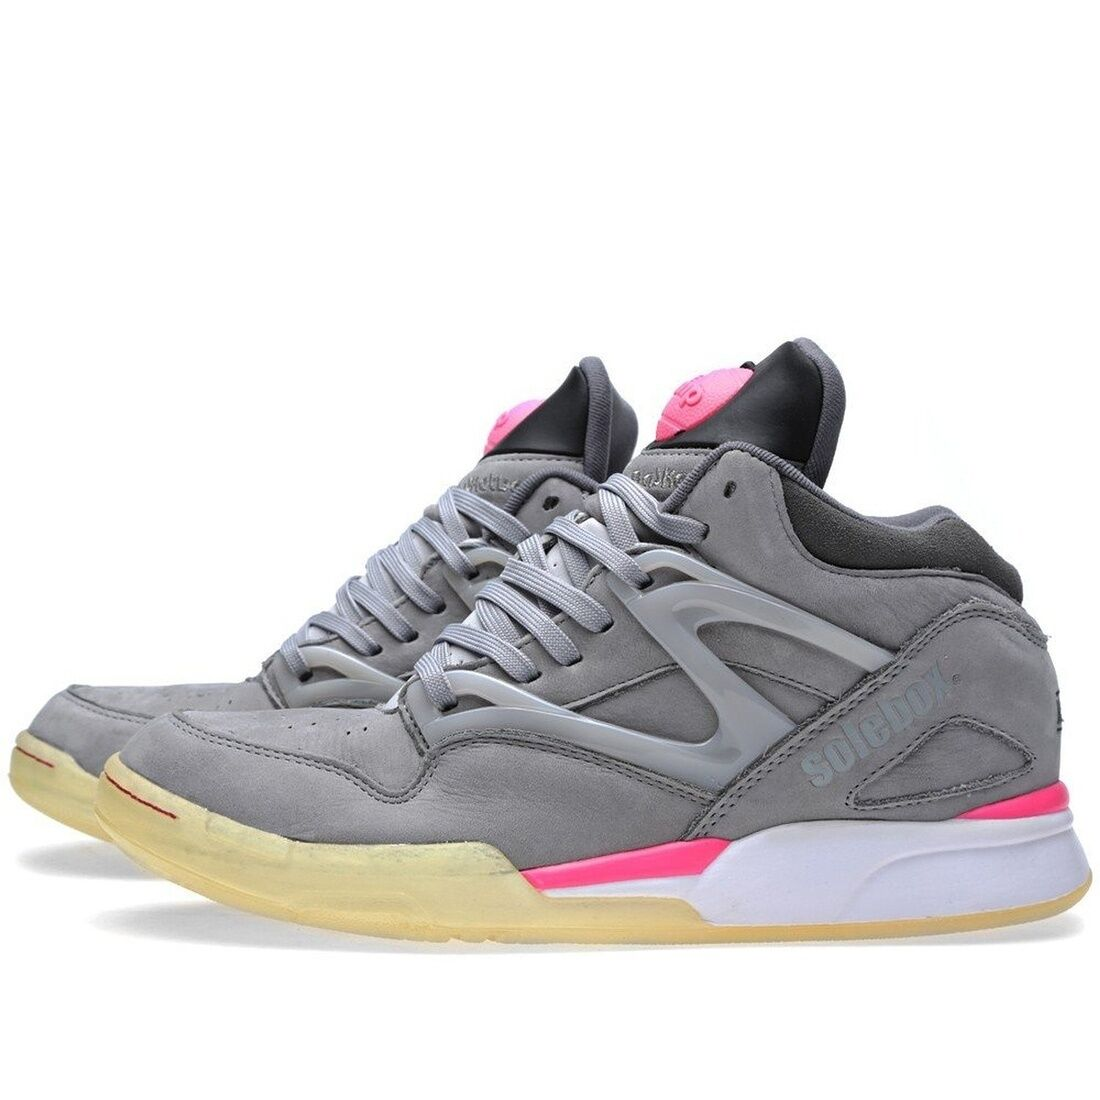 Reebok Pump Omni Lite Solebox Grey Pink